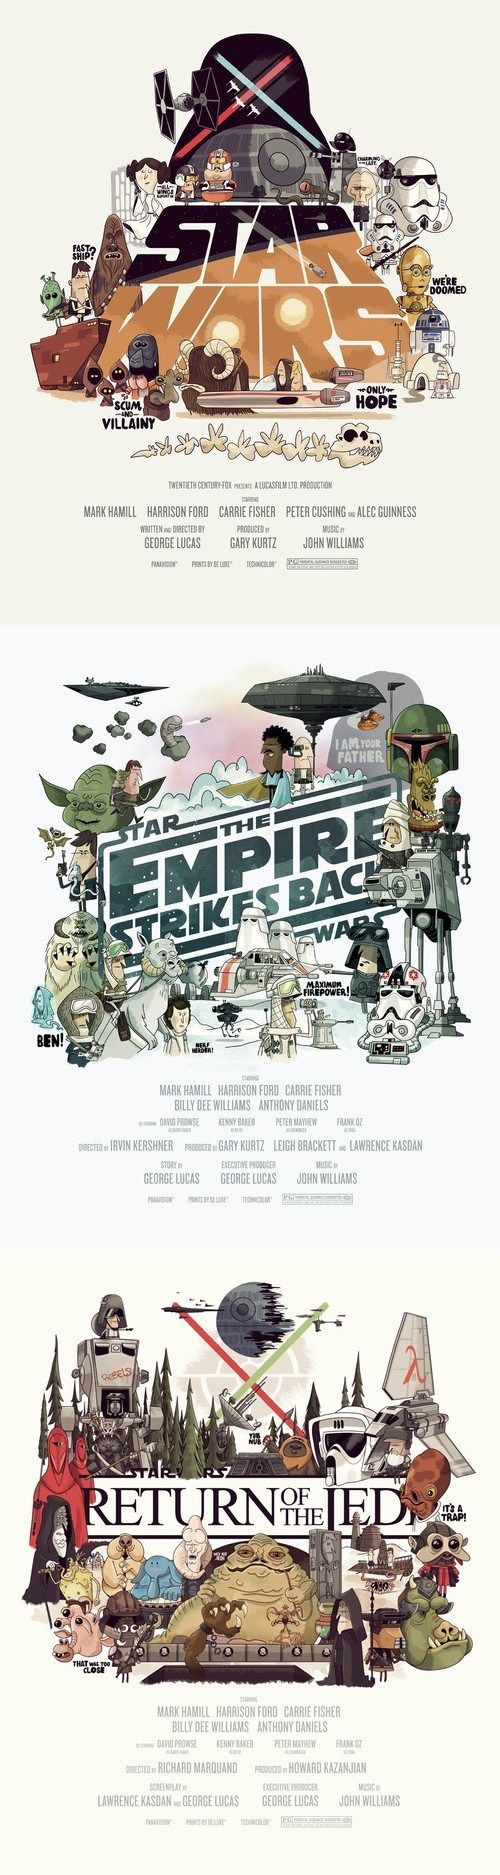 Illustrated Star Wars Posters - Cheezburger